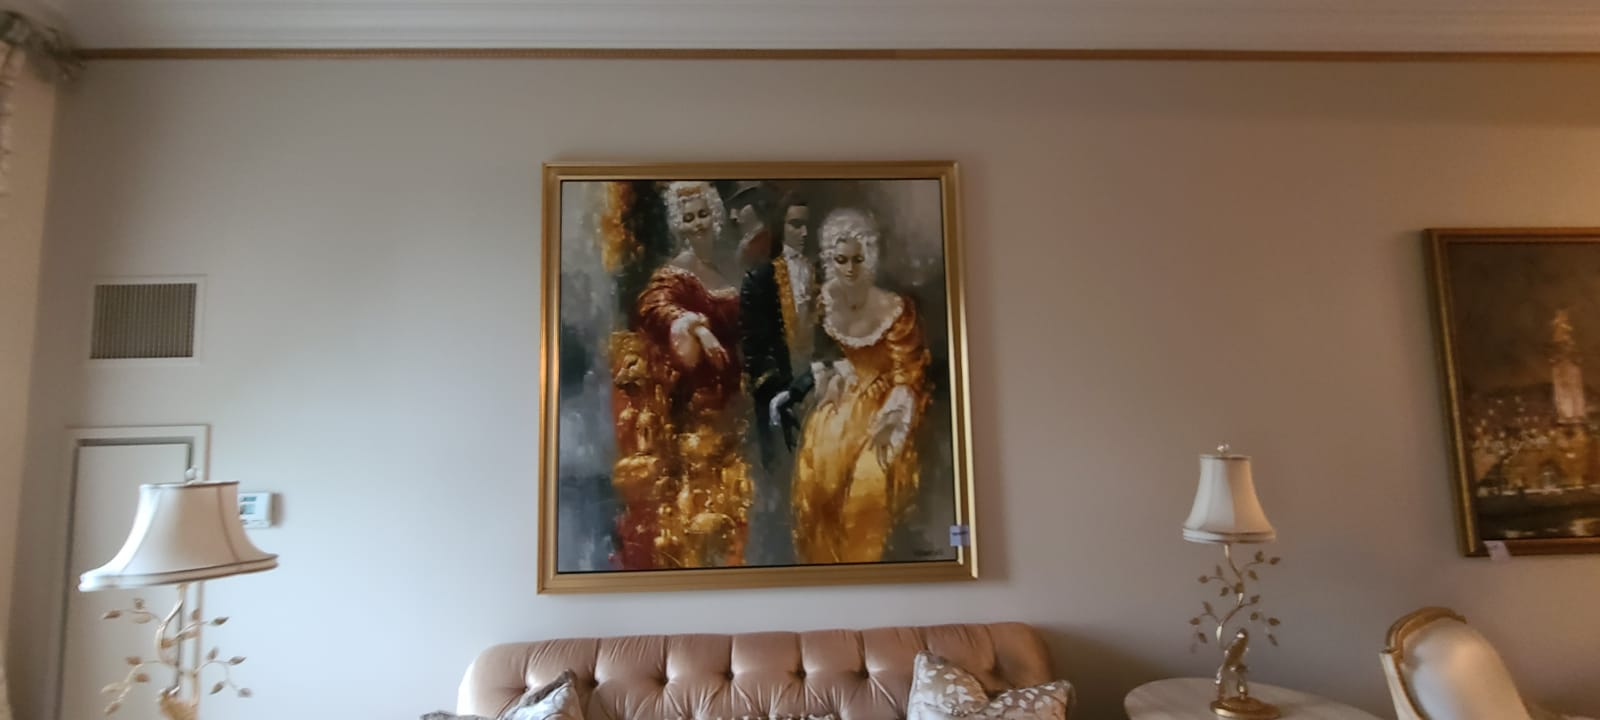 Fine art moving services in New York